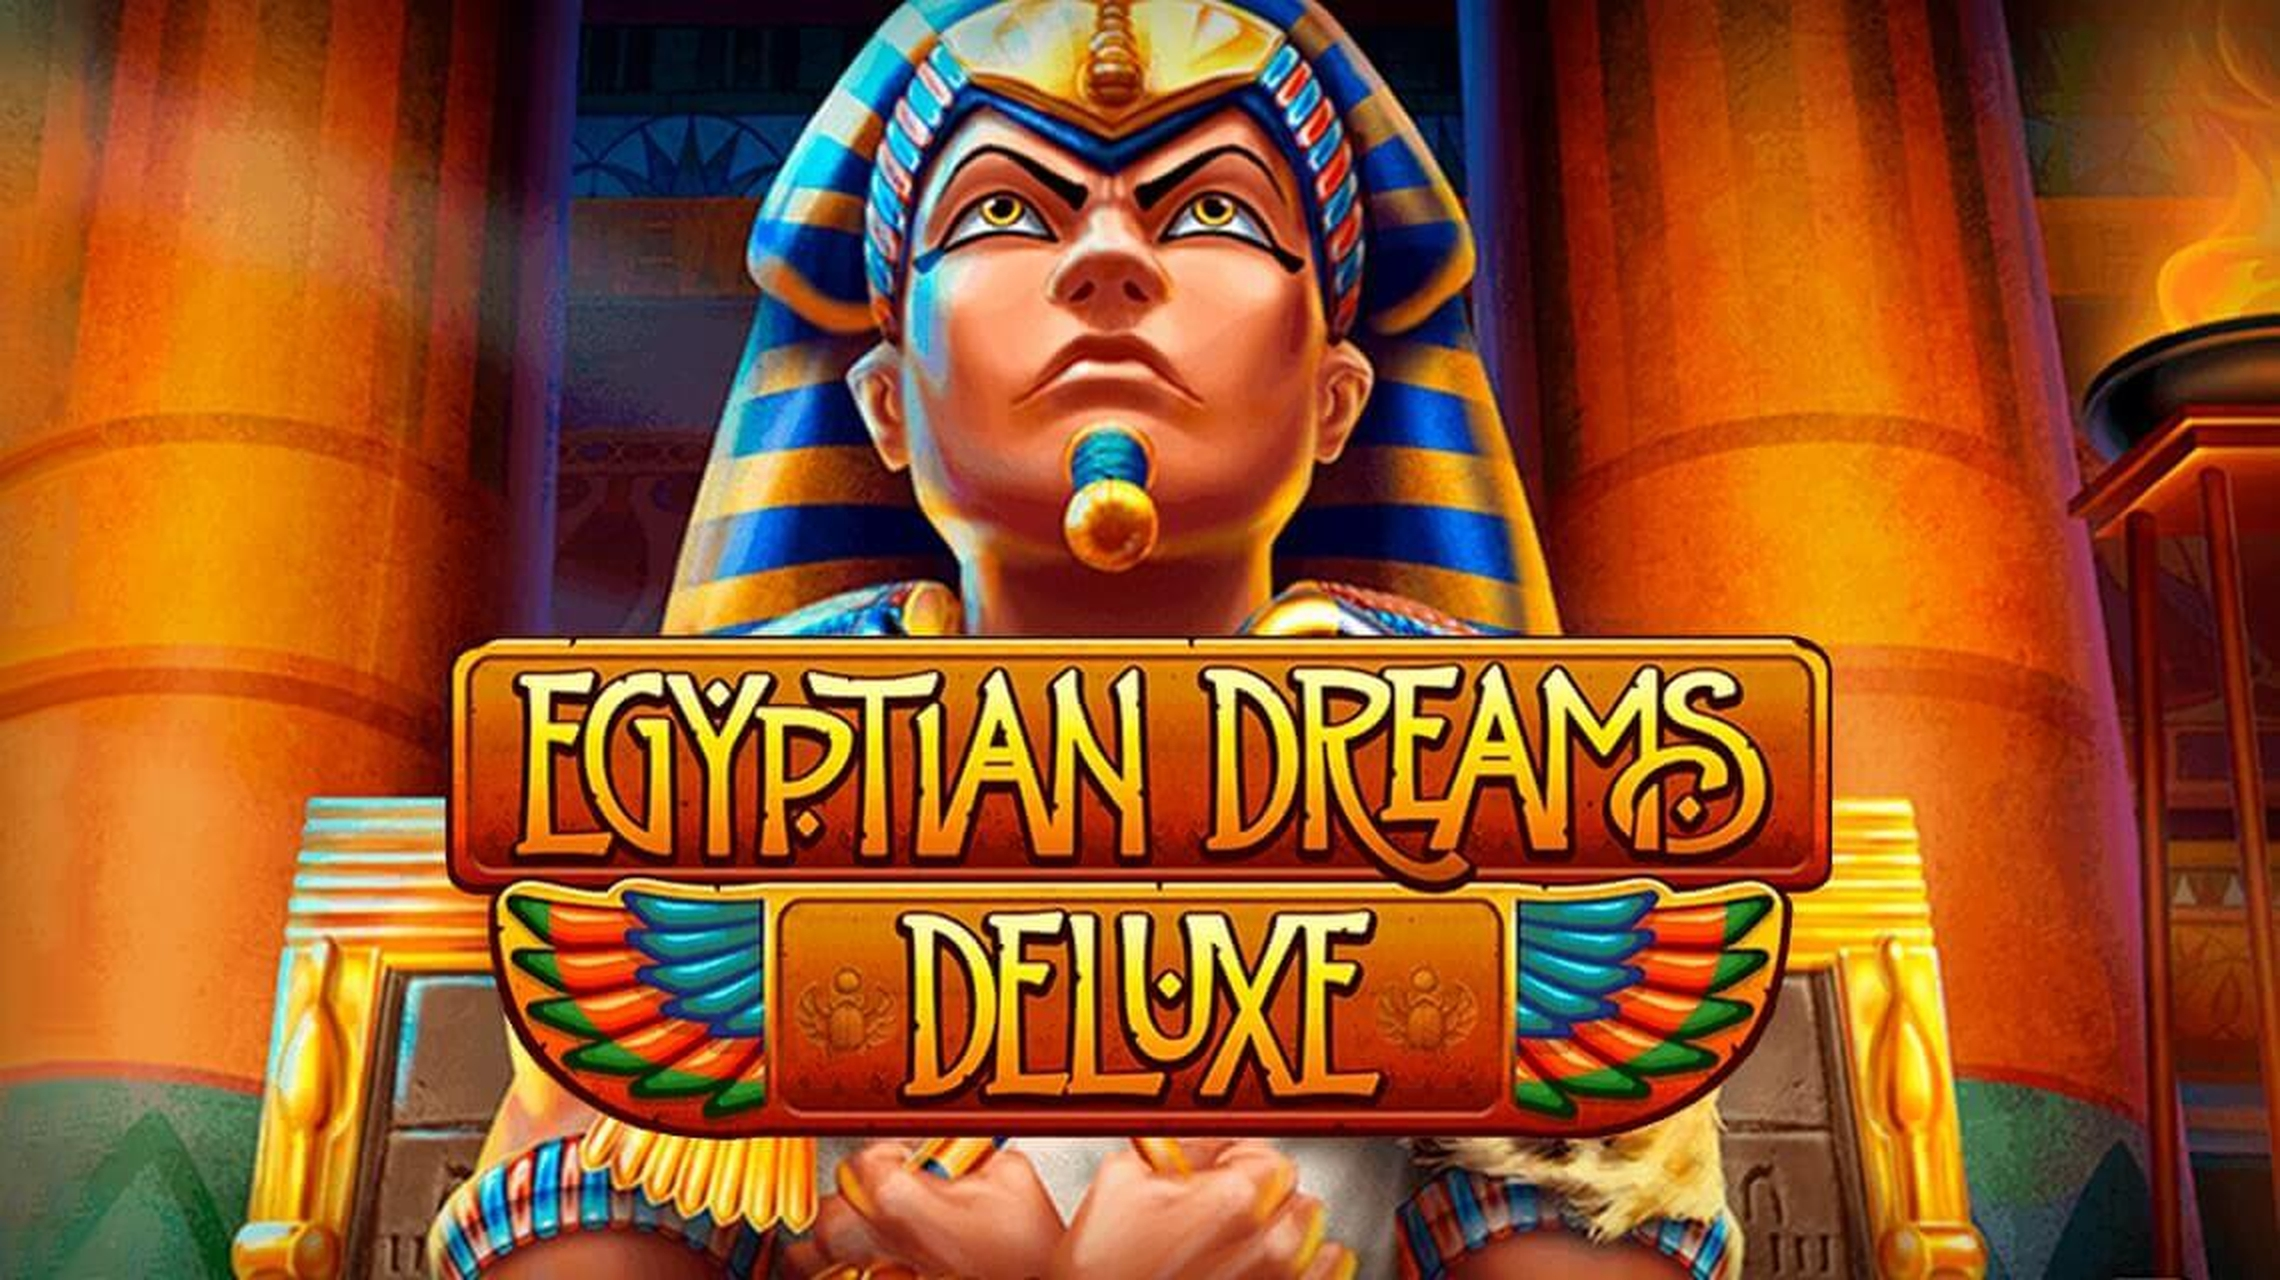 The Egyptian Dreams Deluxe Online Slot Demo Game by Habanero